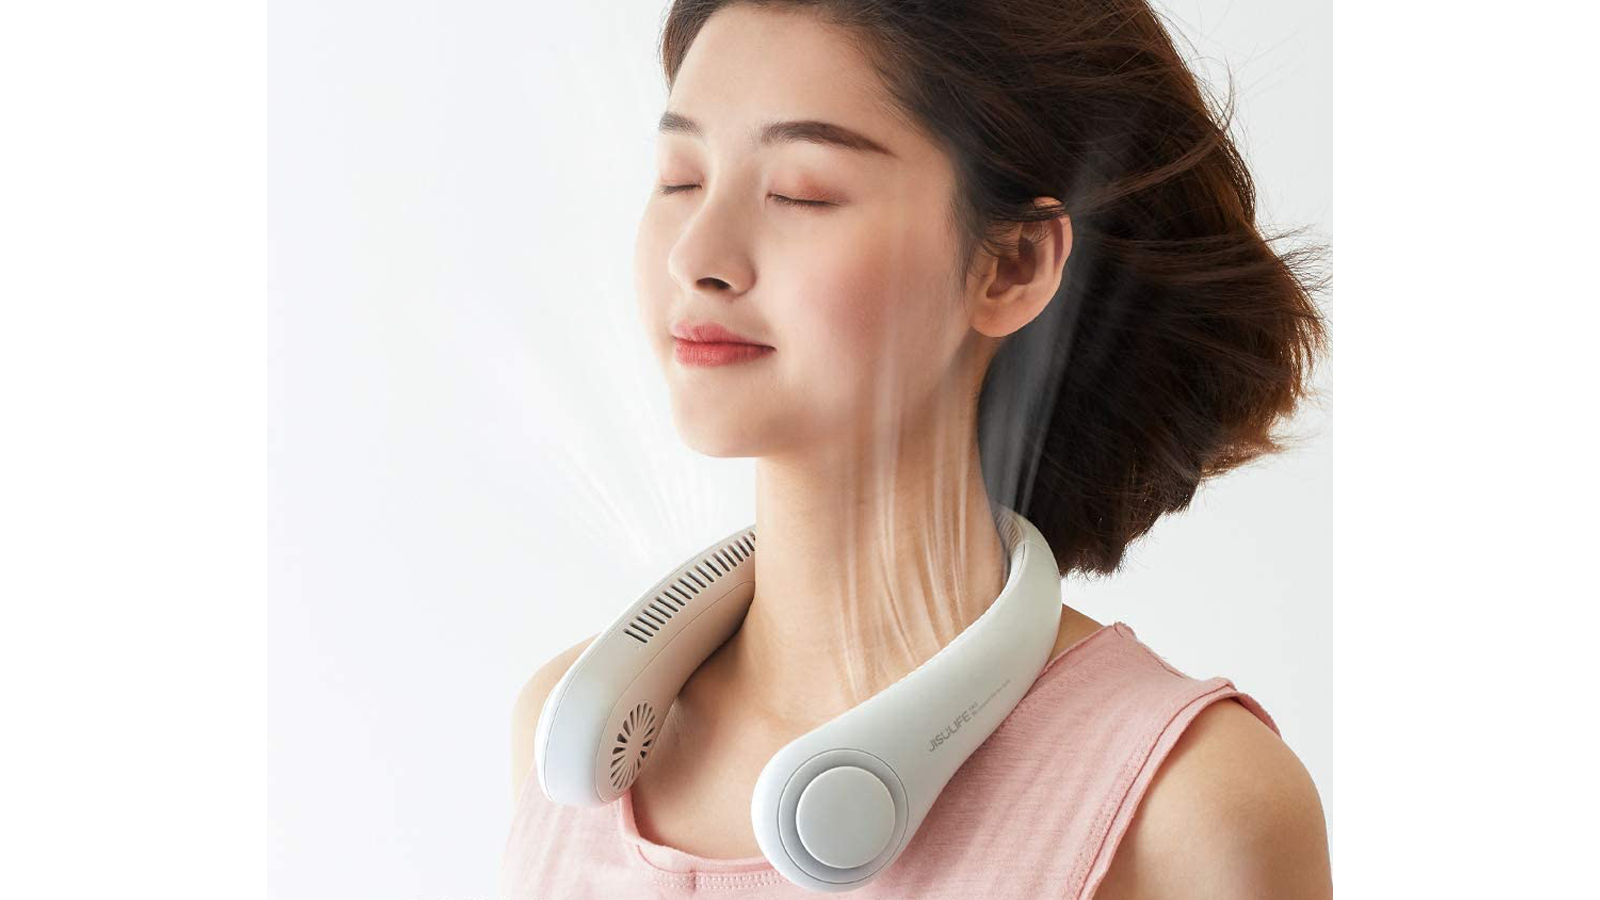 This Hands-Free Portable Neck Fan is a Seriously Cool Idea